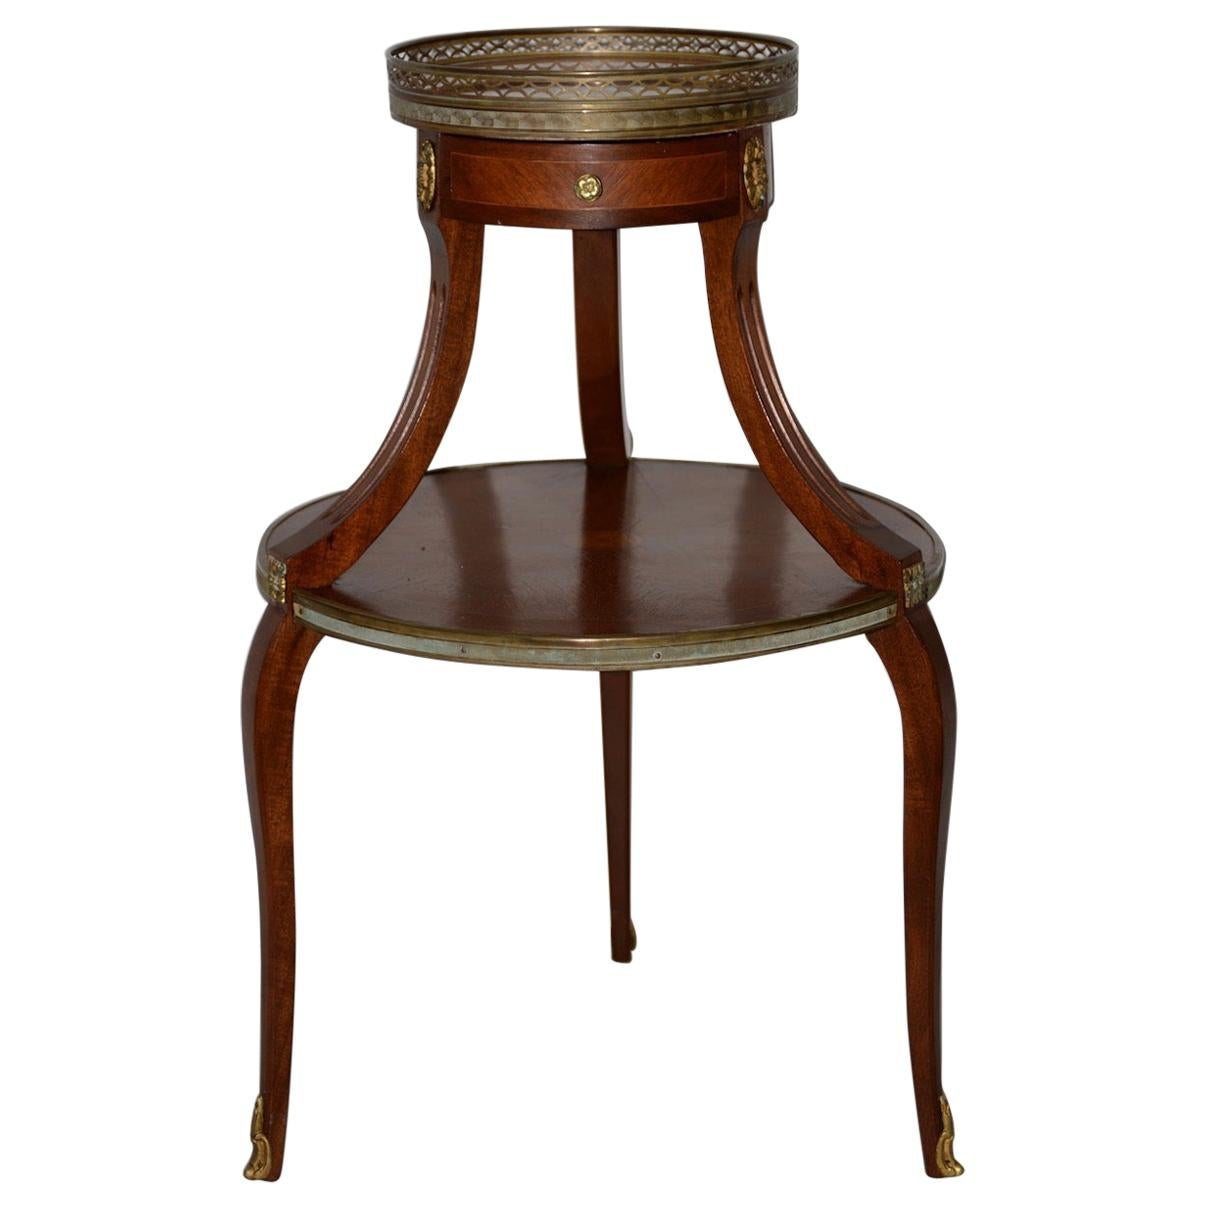 Exquisite Two-Tier Italian Mahogany & Marble Side Table, circa 1910